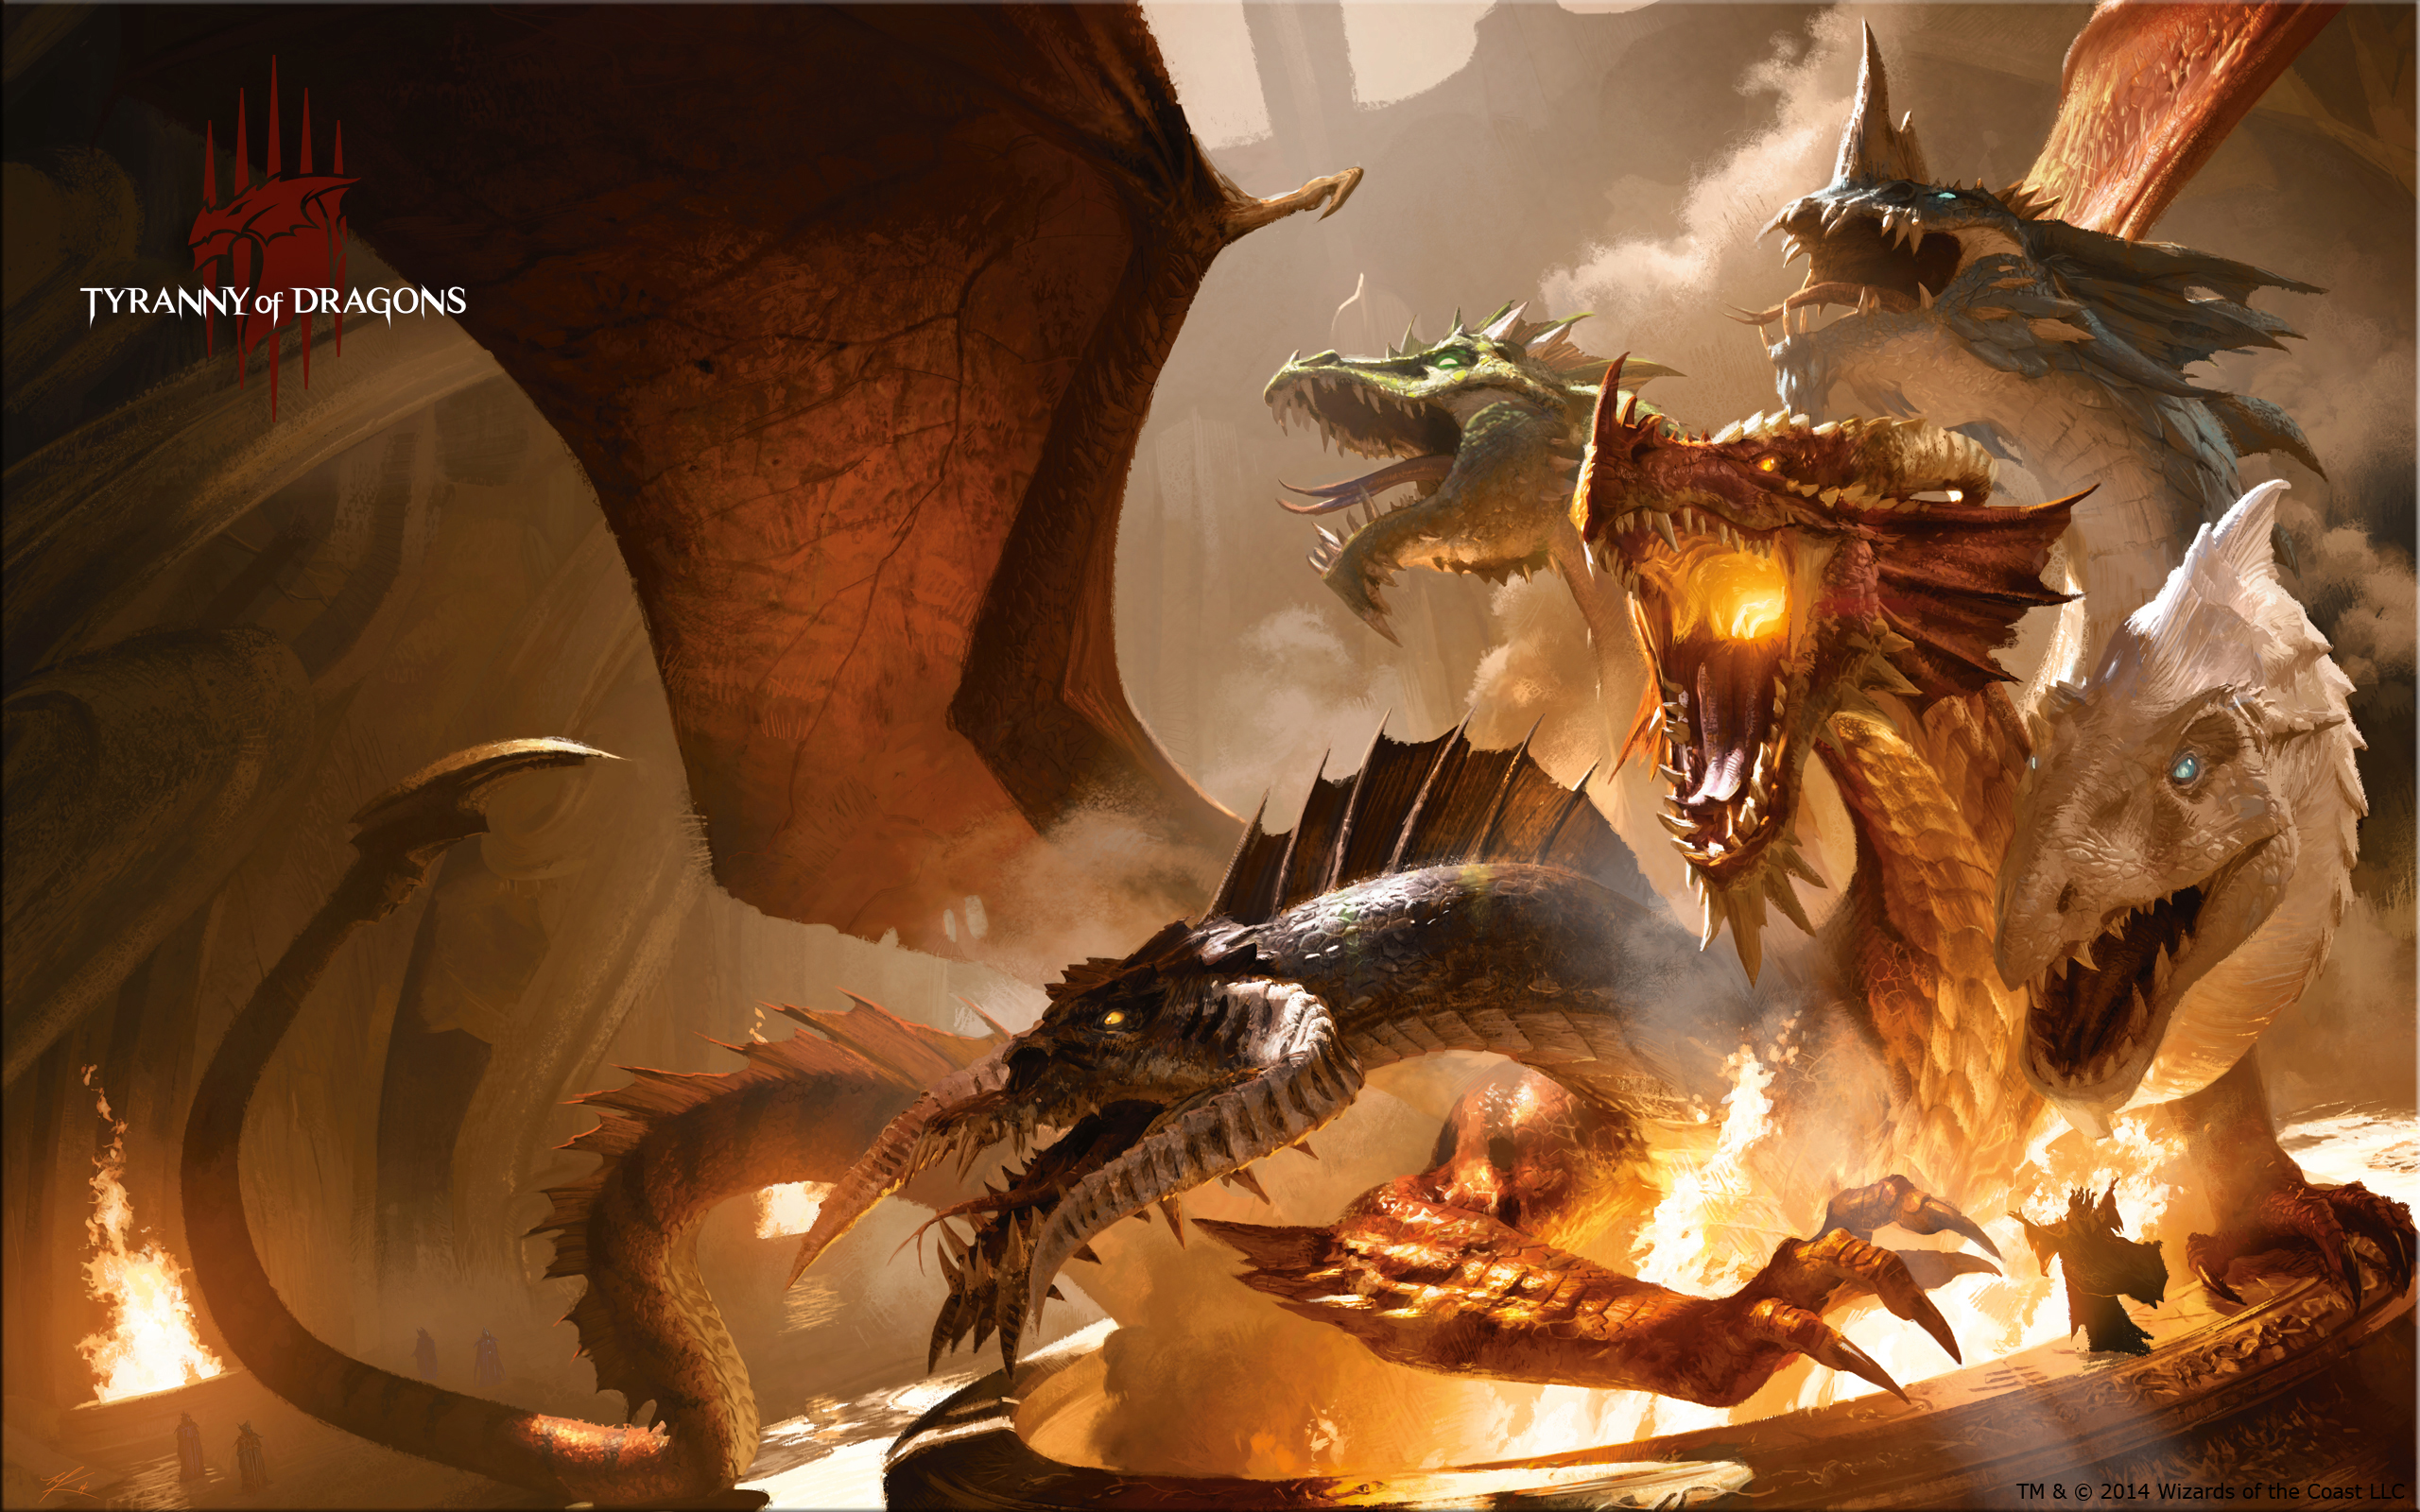 [48+] Dungeons and Dragons Wallpaper 1920x1080 on ...